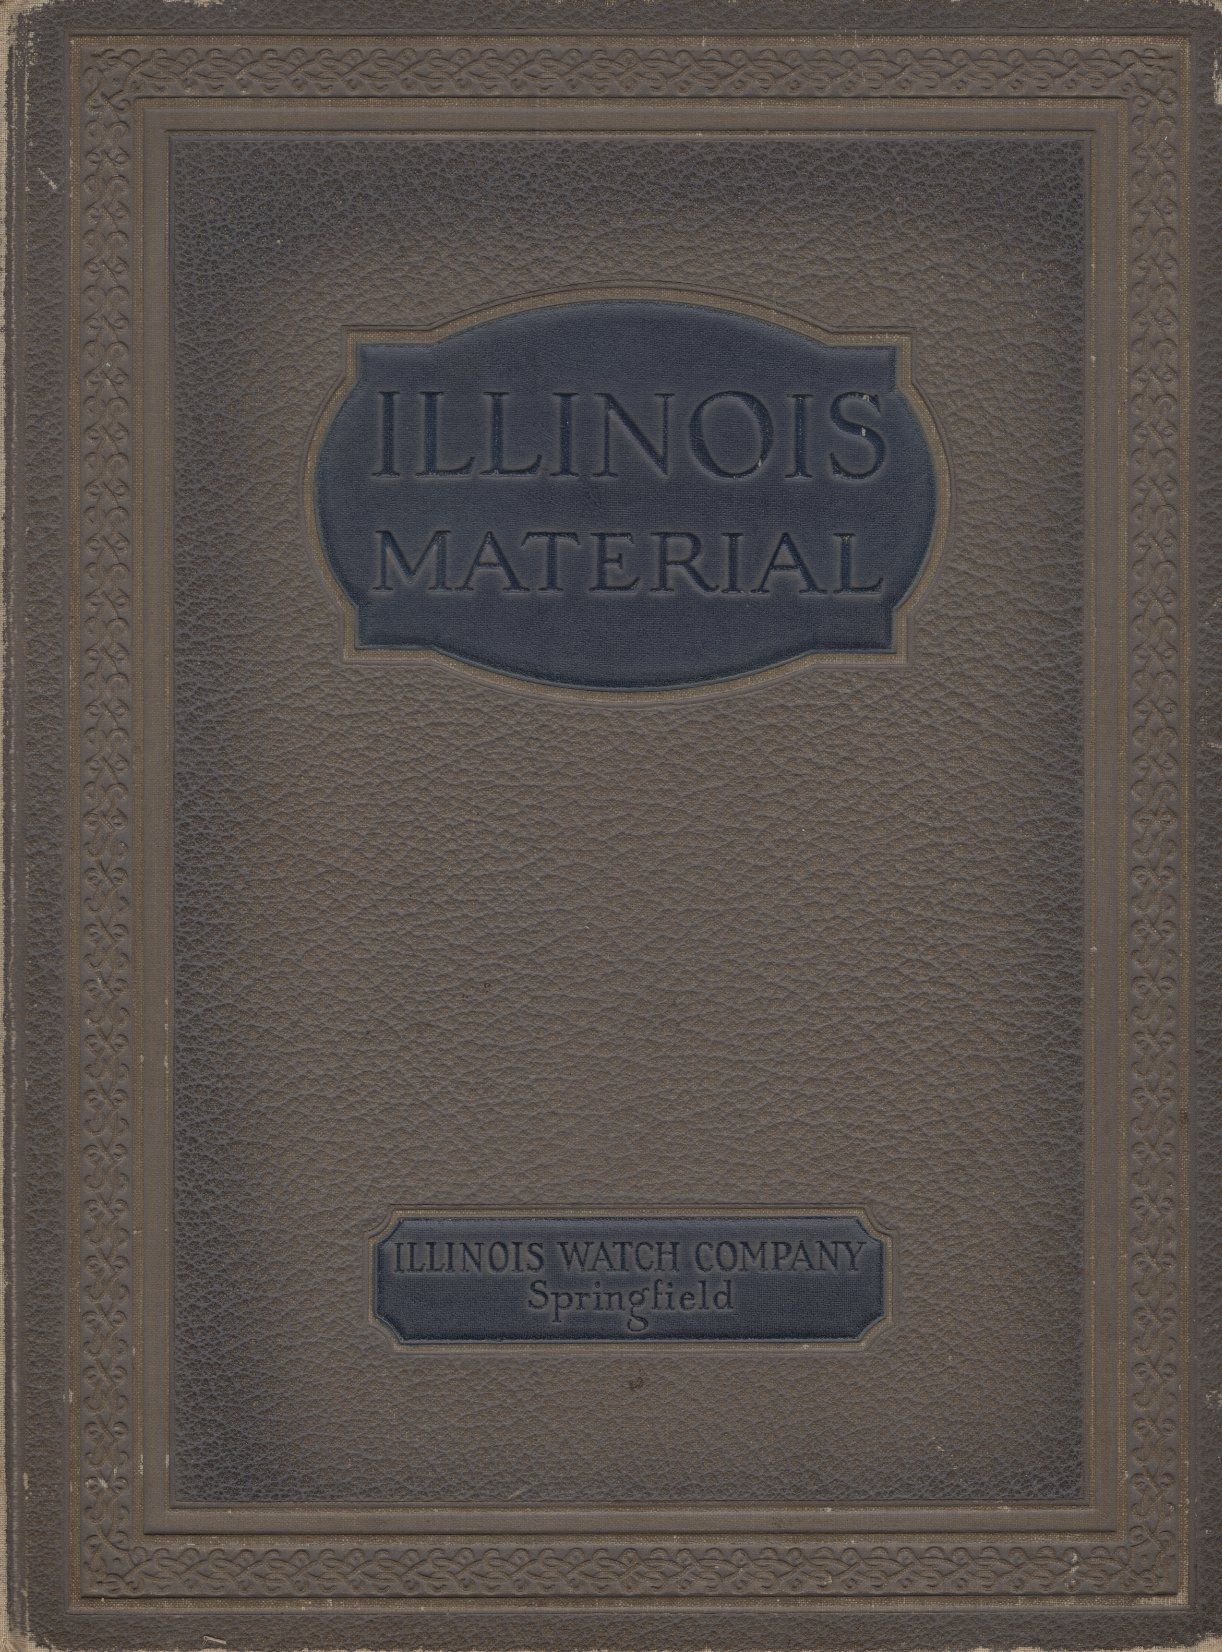 Illinois Watch Company 1923 Material Catalog Cover Image